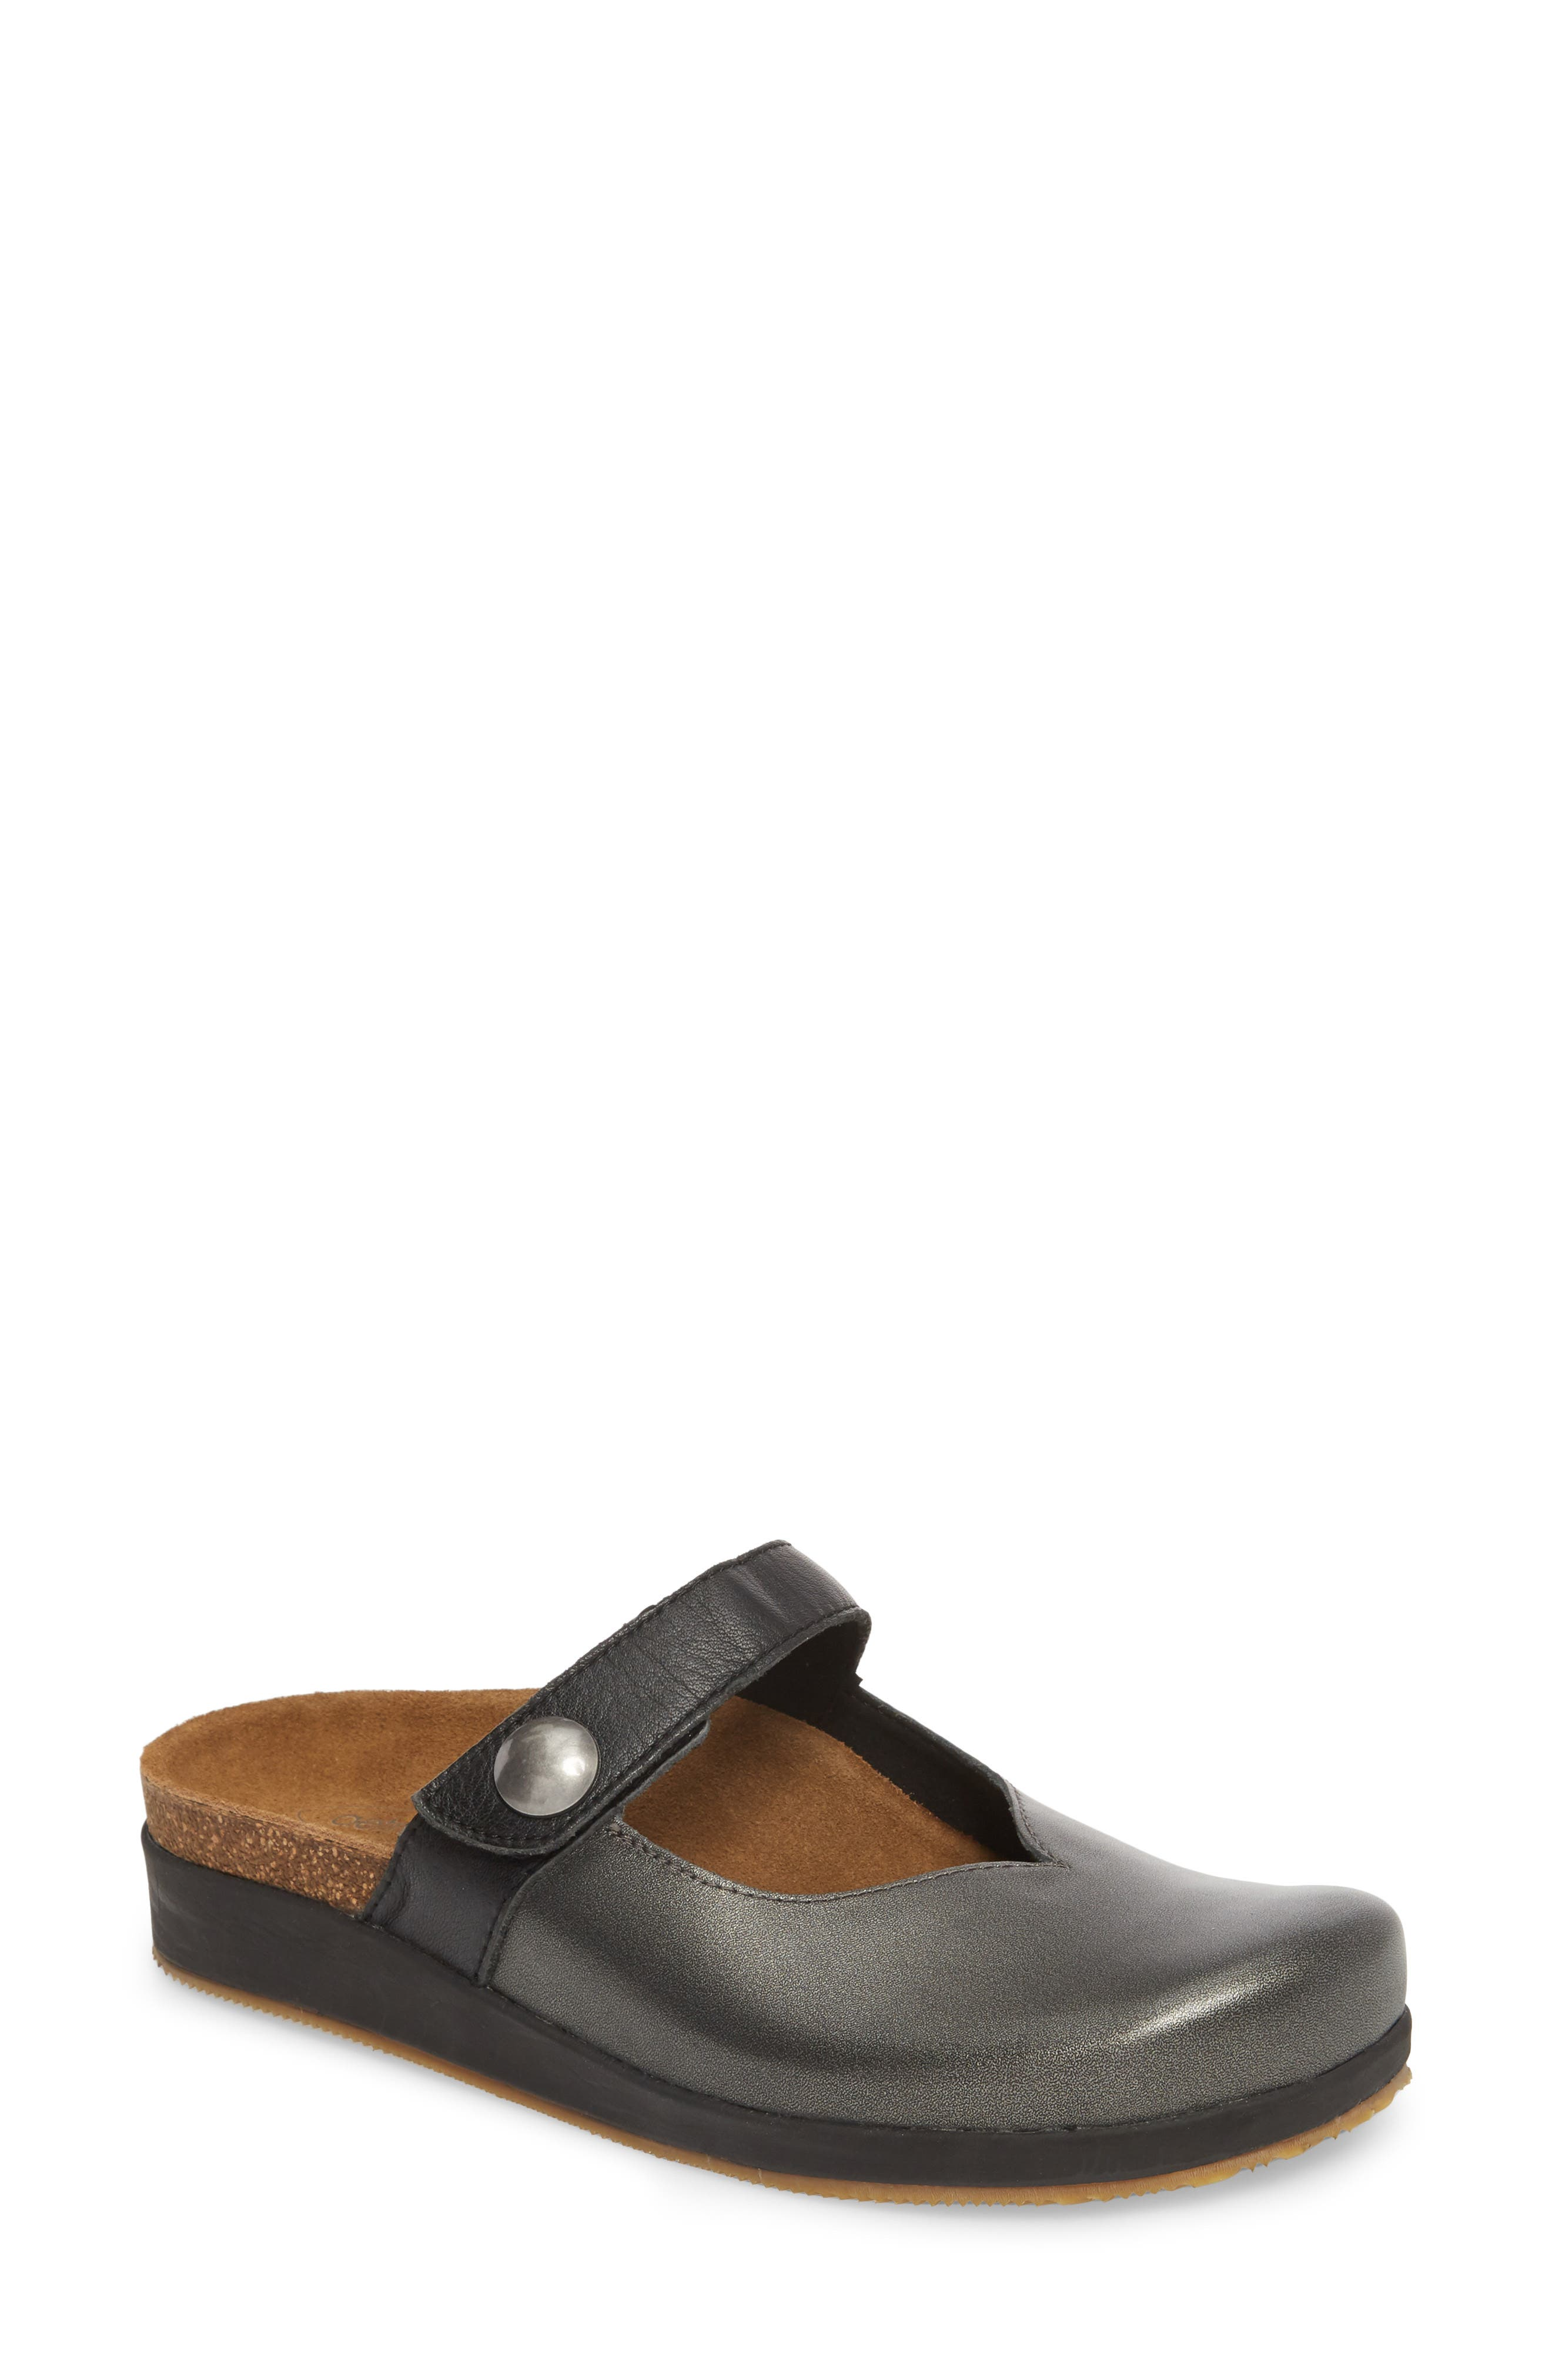 Scarlett Clog,                             Main thumbnail 1, color,                             PEWTER LEATHER